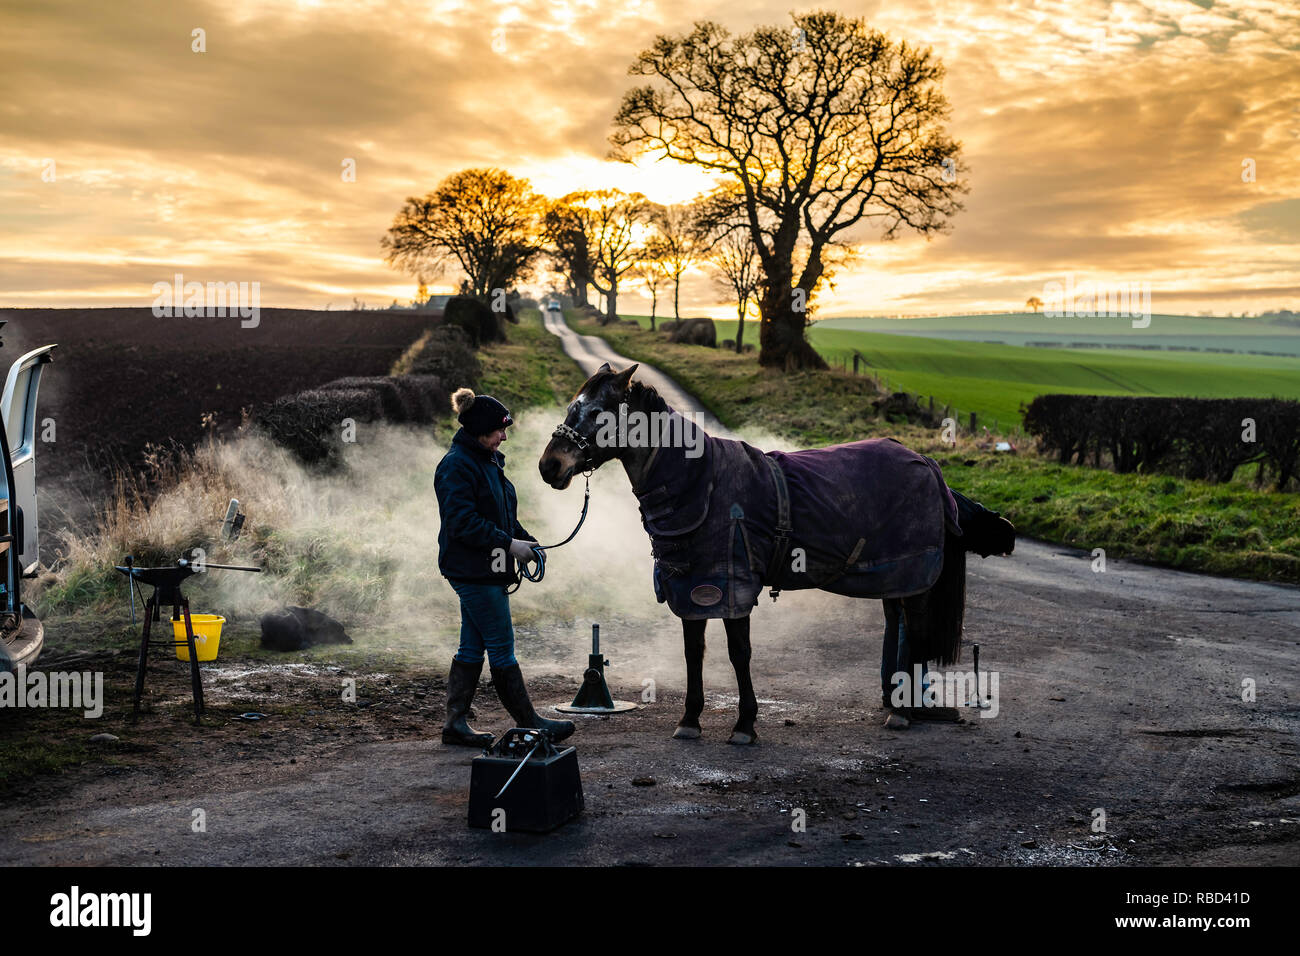 Morebattle, Kelso, Scottish Borders, UK. 9th January 2019. Gillian MacFadyen has her horses shoed by a farrier at the end of a quiet T-junction near Morebattle village in the Scottish Borders. Credit: Chris Strickland / Alamy Live News - Stock Image